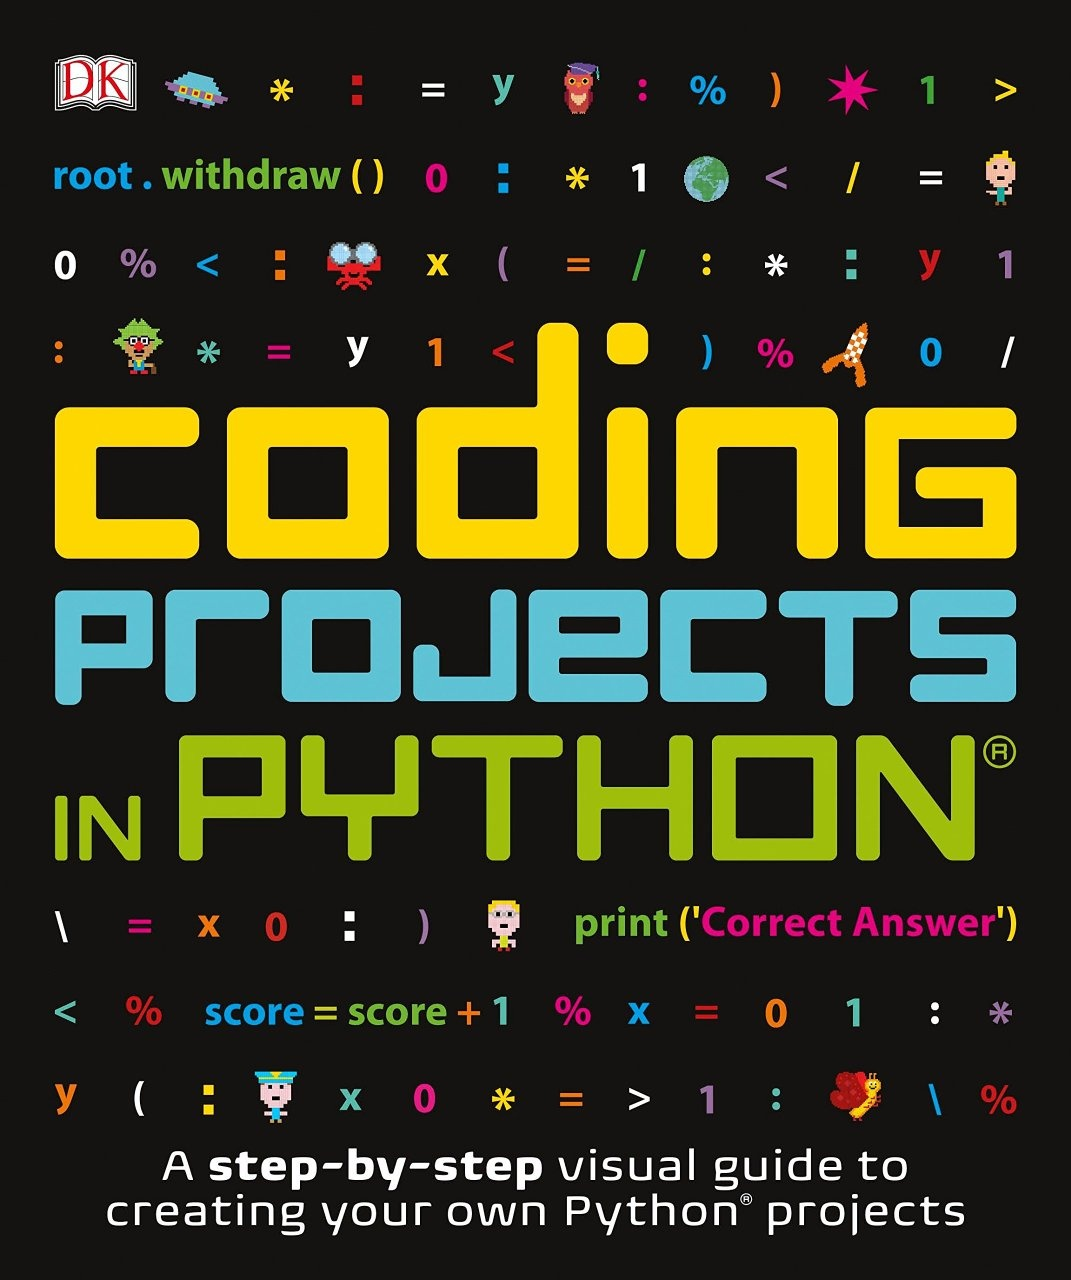 What are some good college projects on Python? - Quora